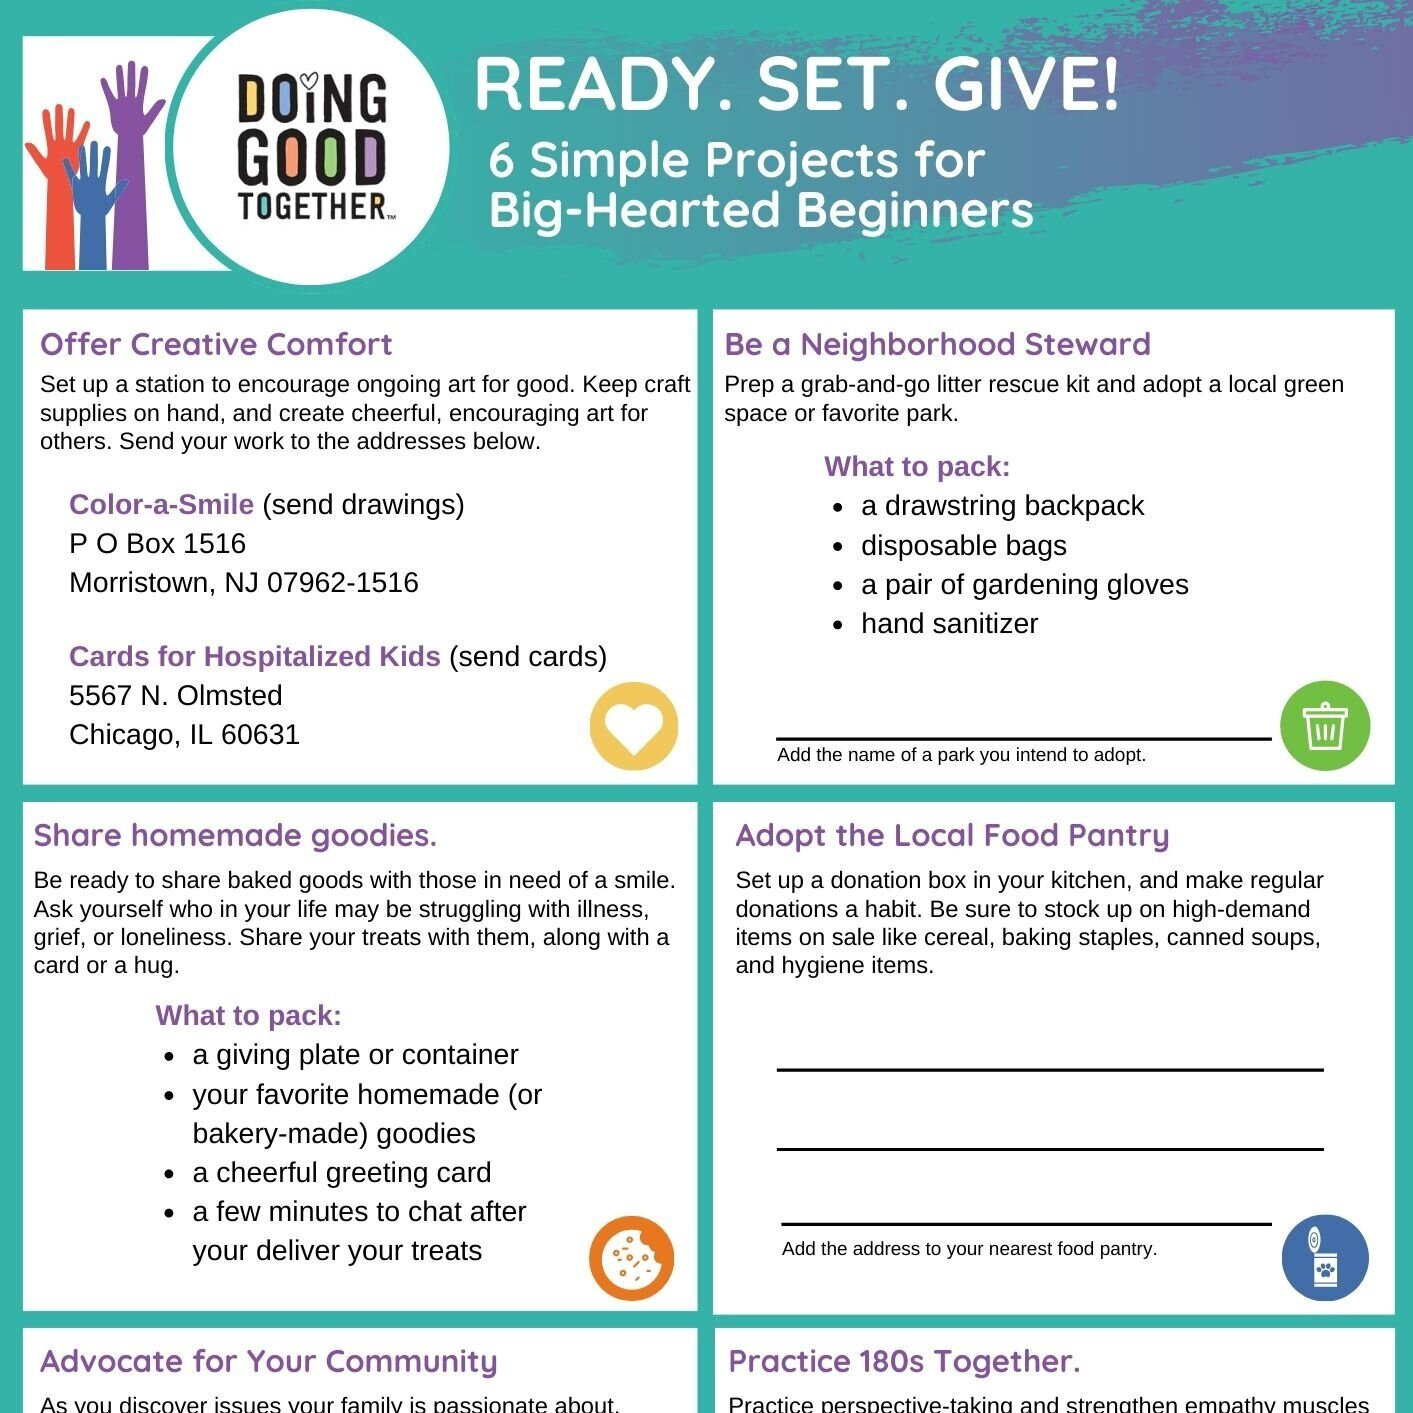 ready set give 6 simple acts for beginners jpg.jpg